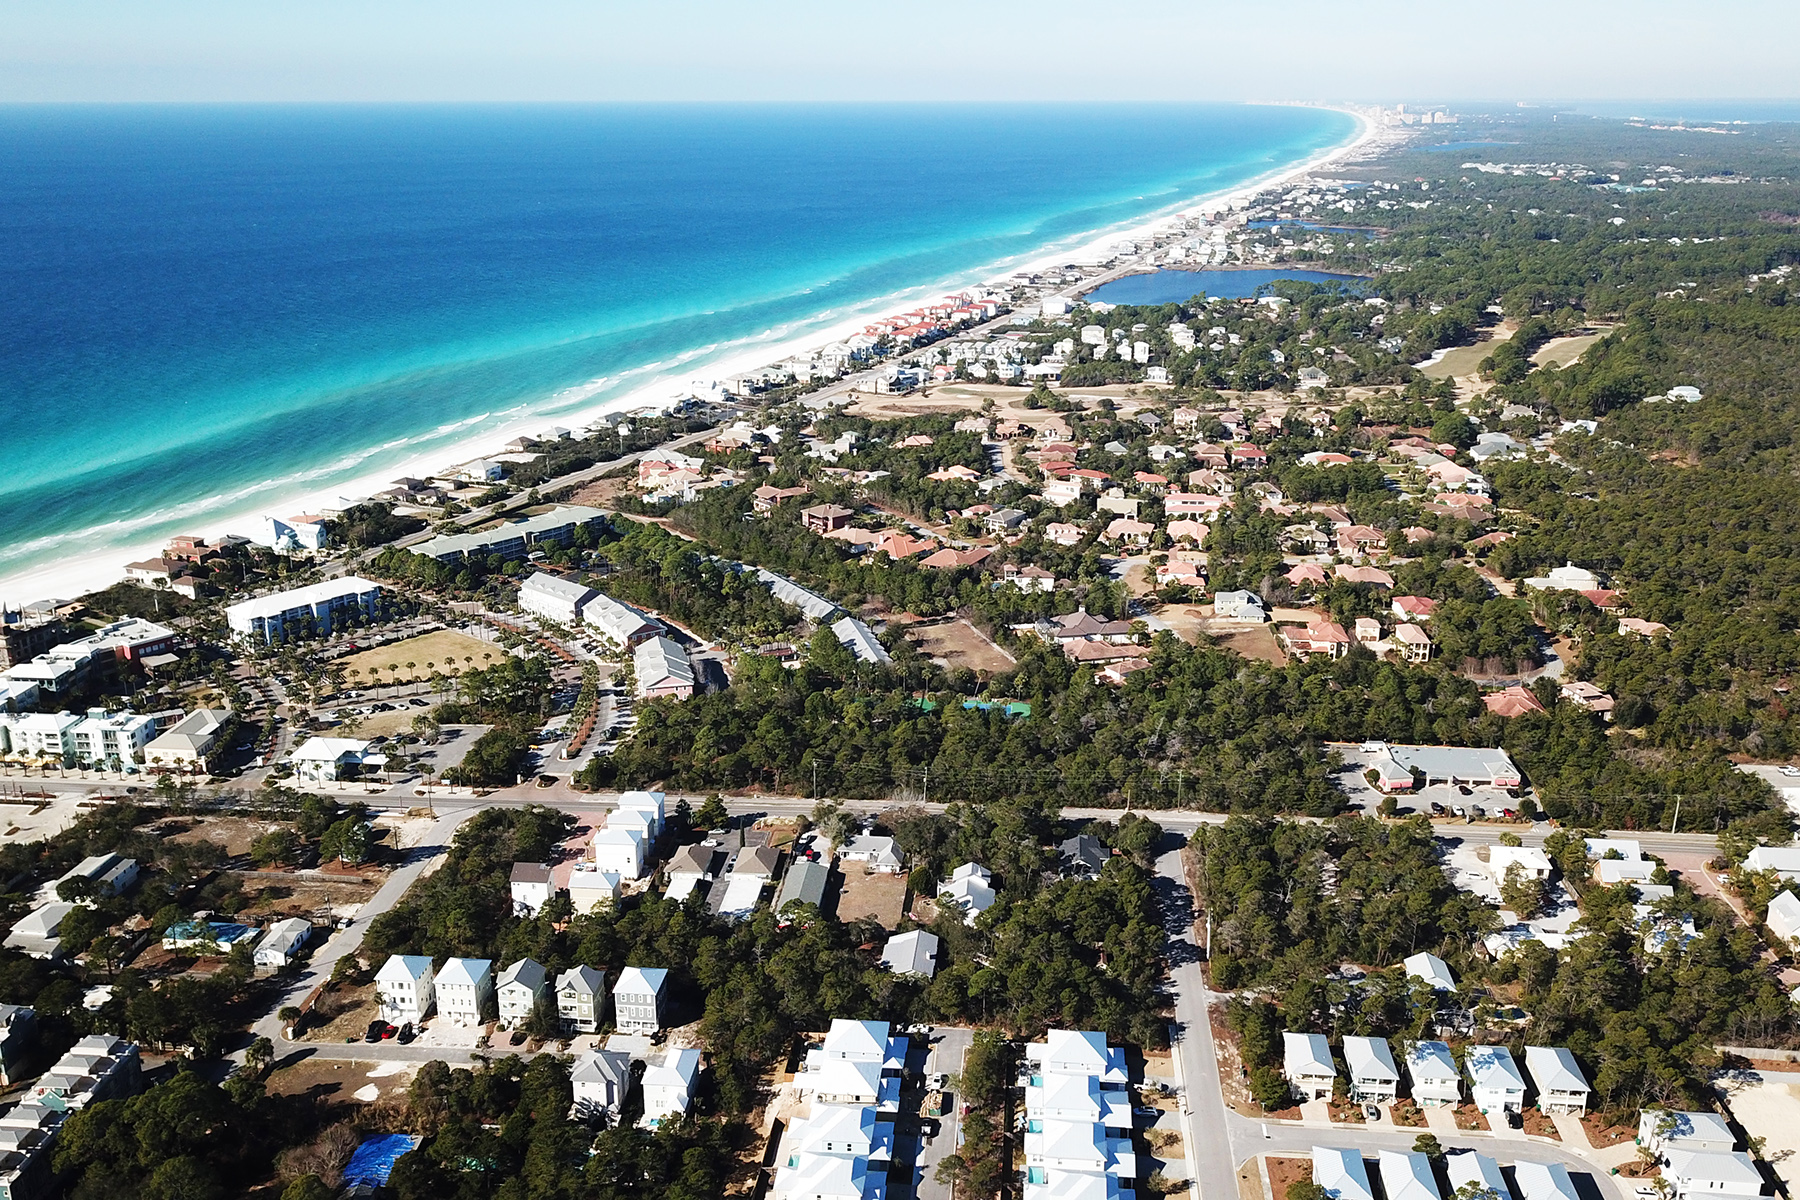 Land for Sale at Rare Commercial or Residential Development Opportunity 2.3 Acres S. County Hwy 393, Santa Rosa Beach, Florida, 32459 United States